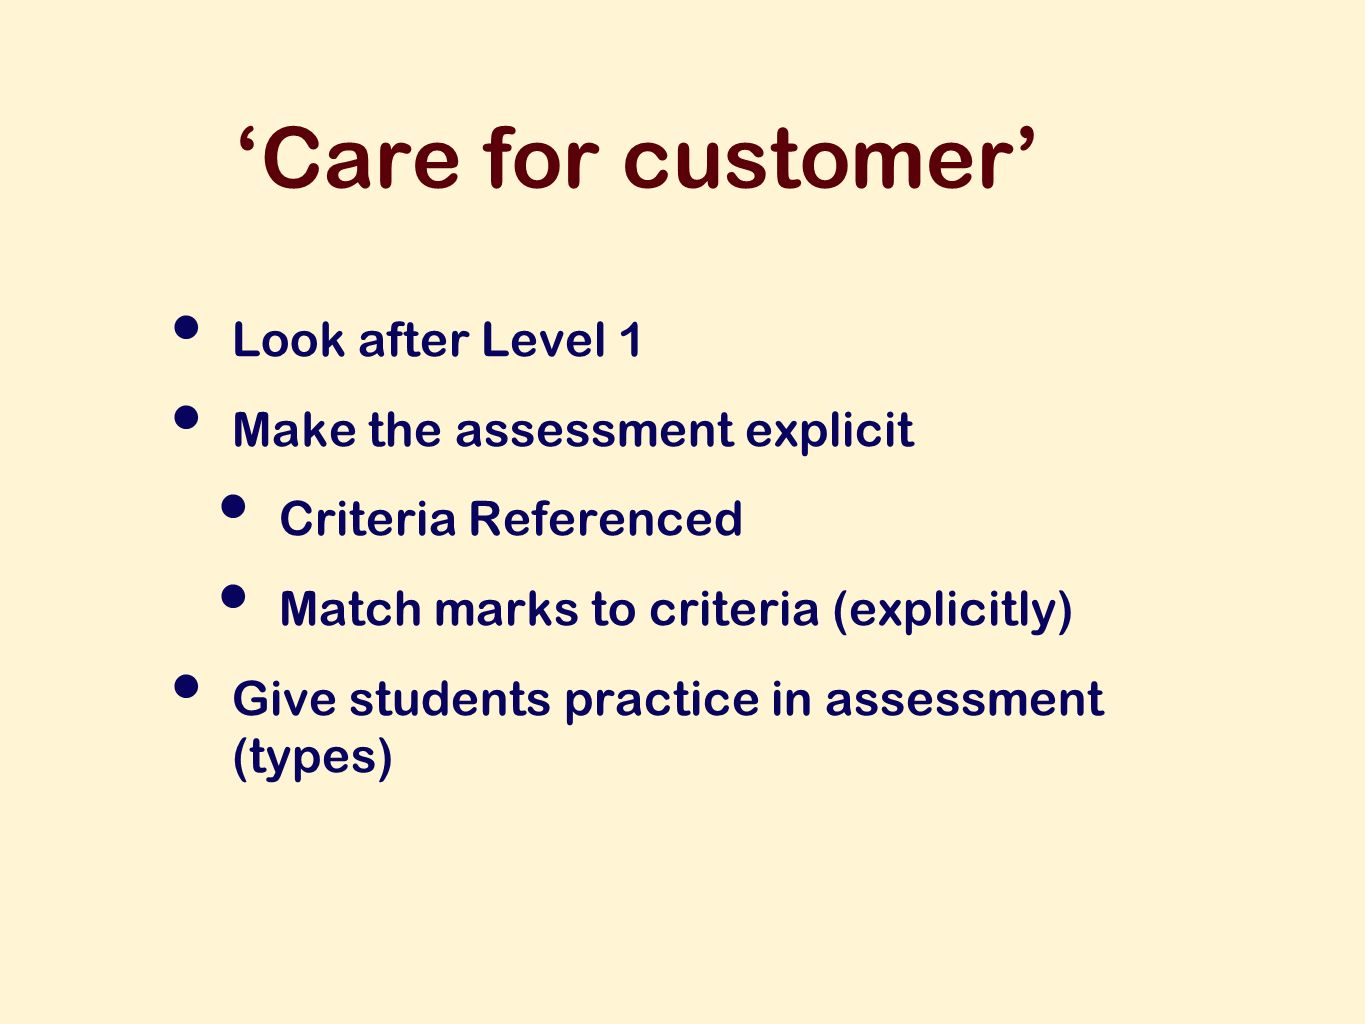 Care for customer Look after Level 1 Make the assessment explicit Criteria Referenced Match marks to criteria (explicitly) Give students practice in assessment (types)